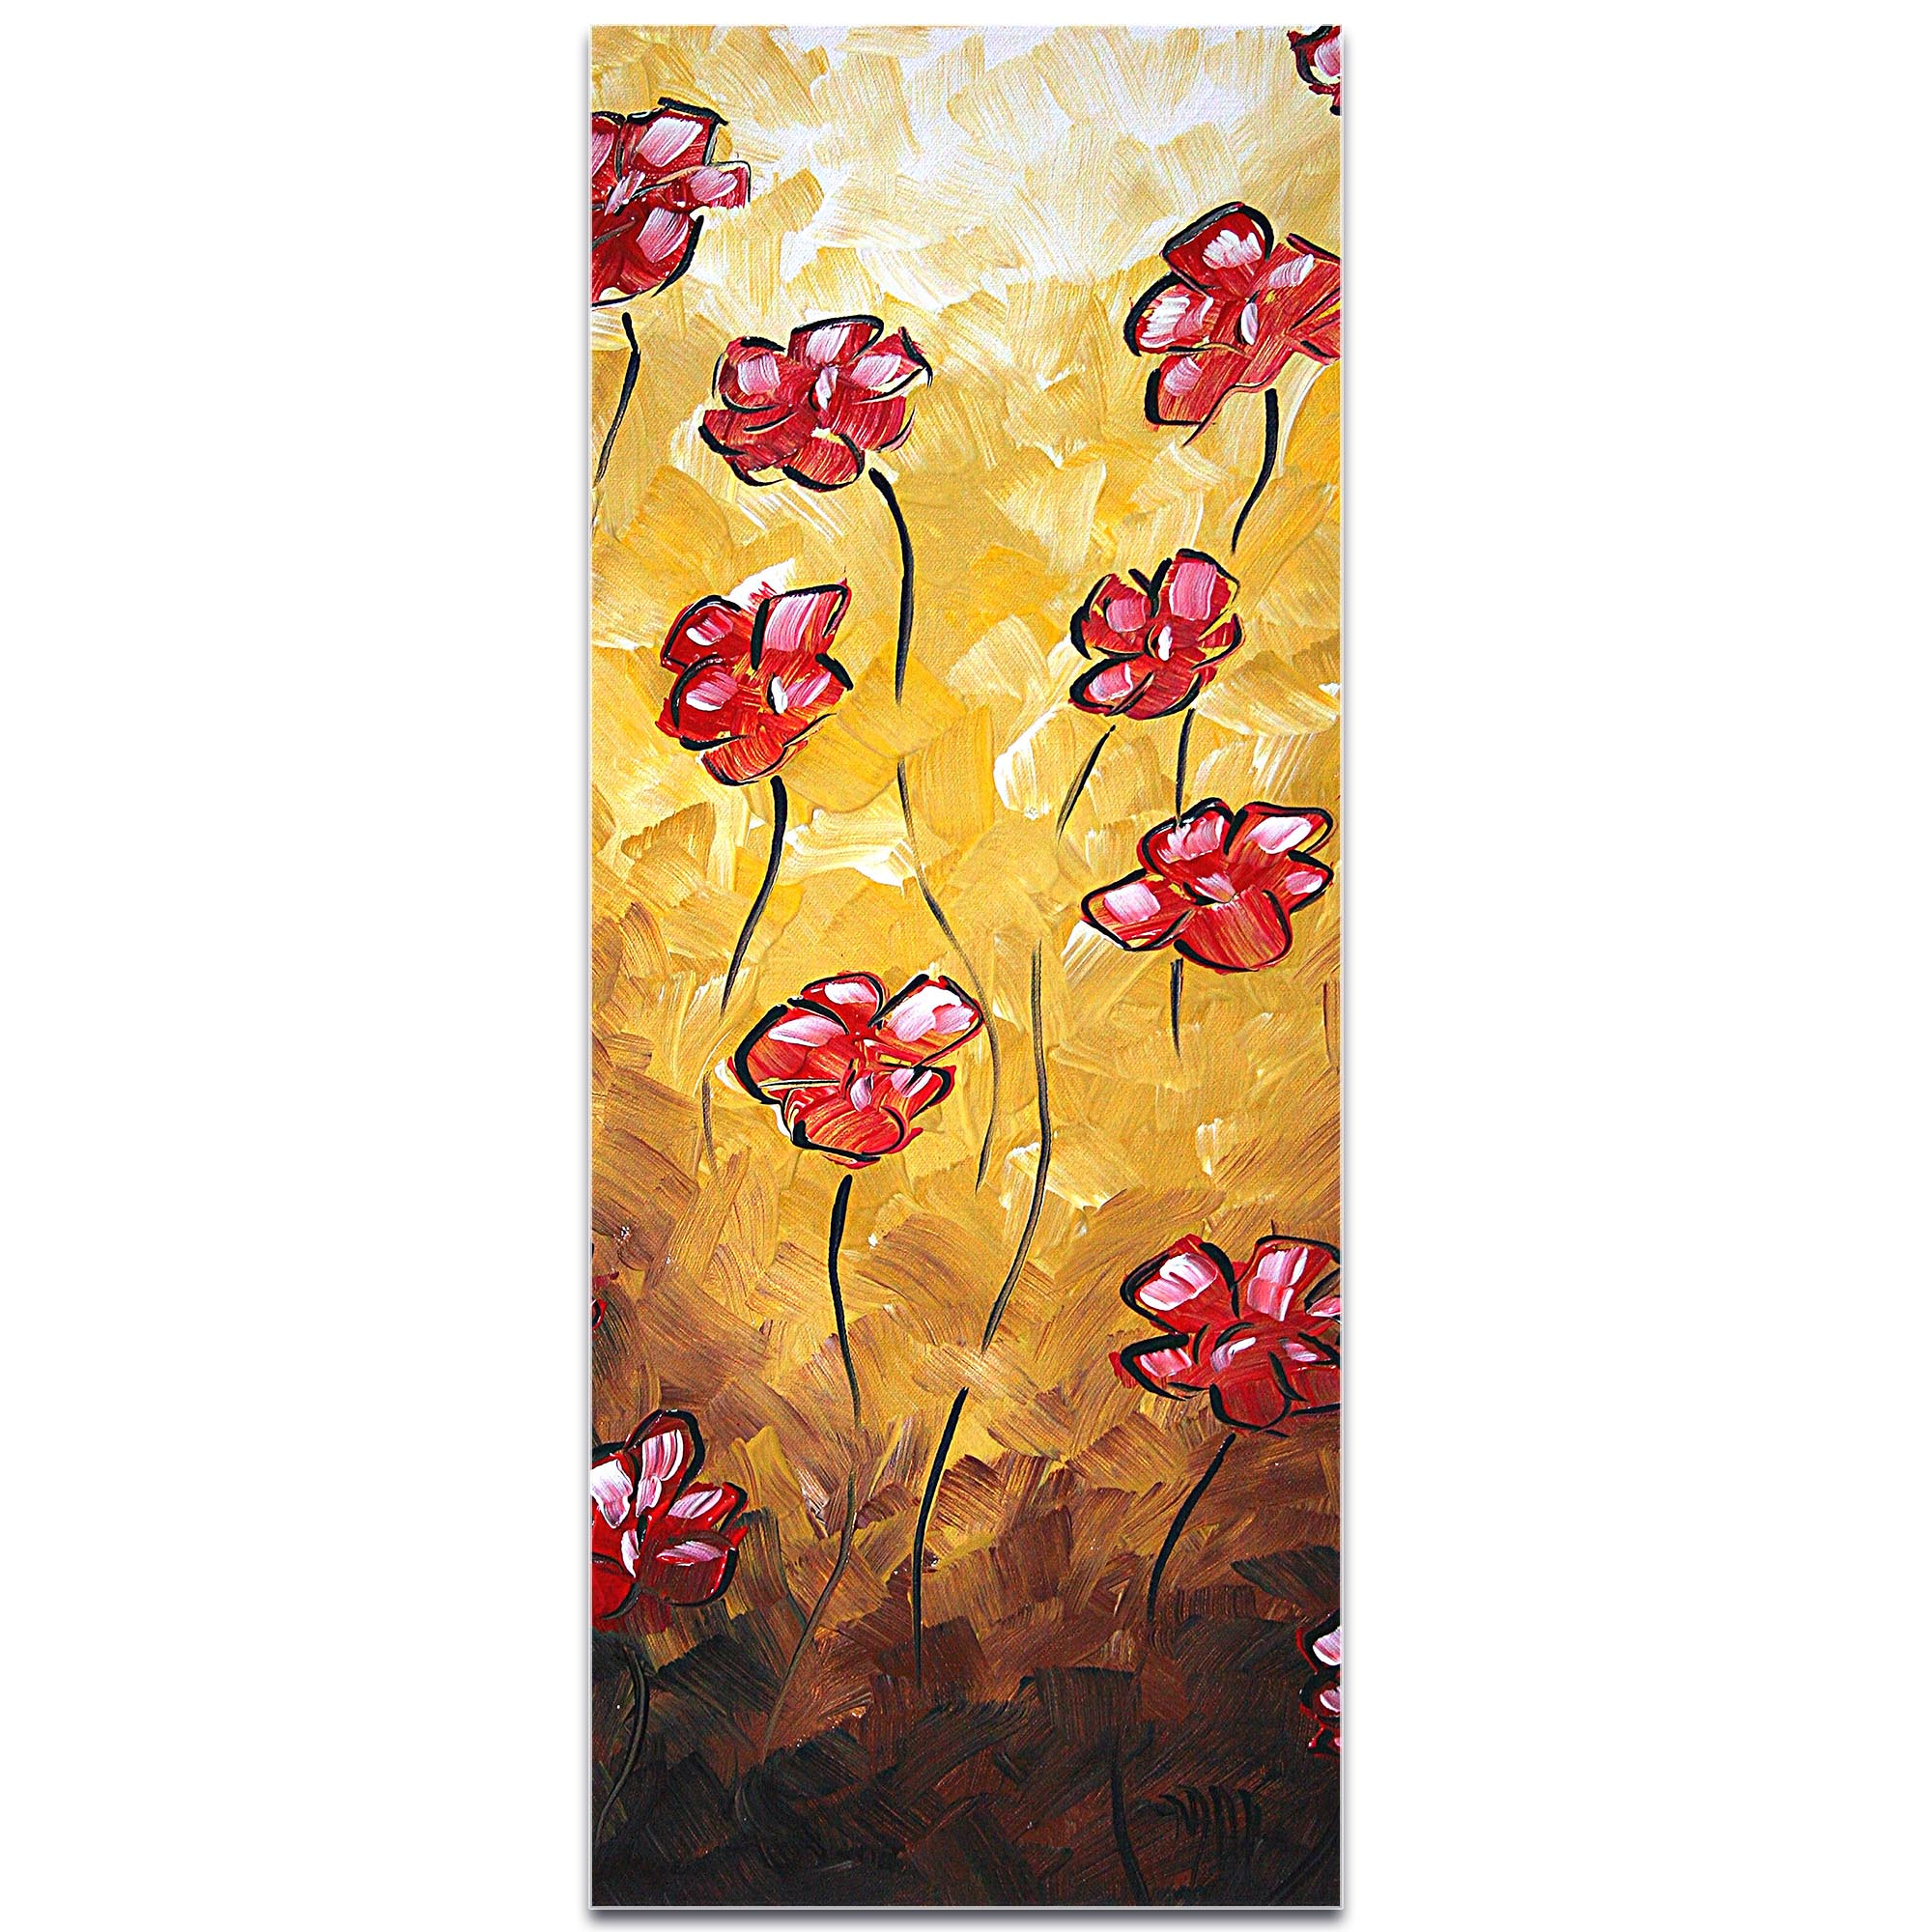 Impasto Flower Painting 'Floating Poppies' - Abstract Flower Art on Metal or Acrylic - Image 2